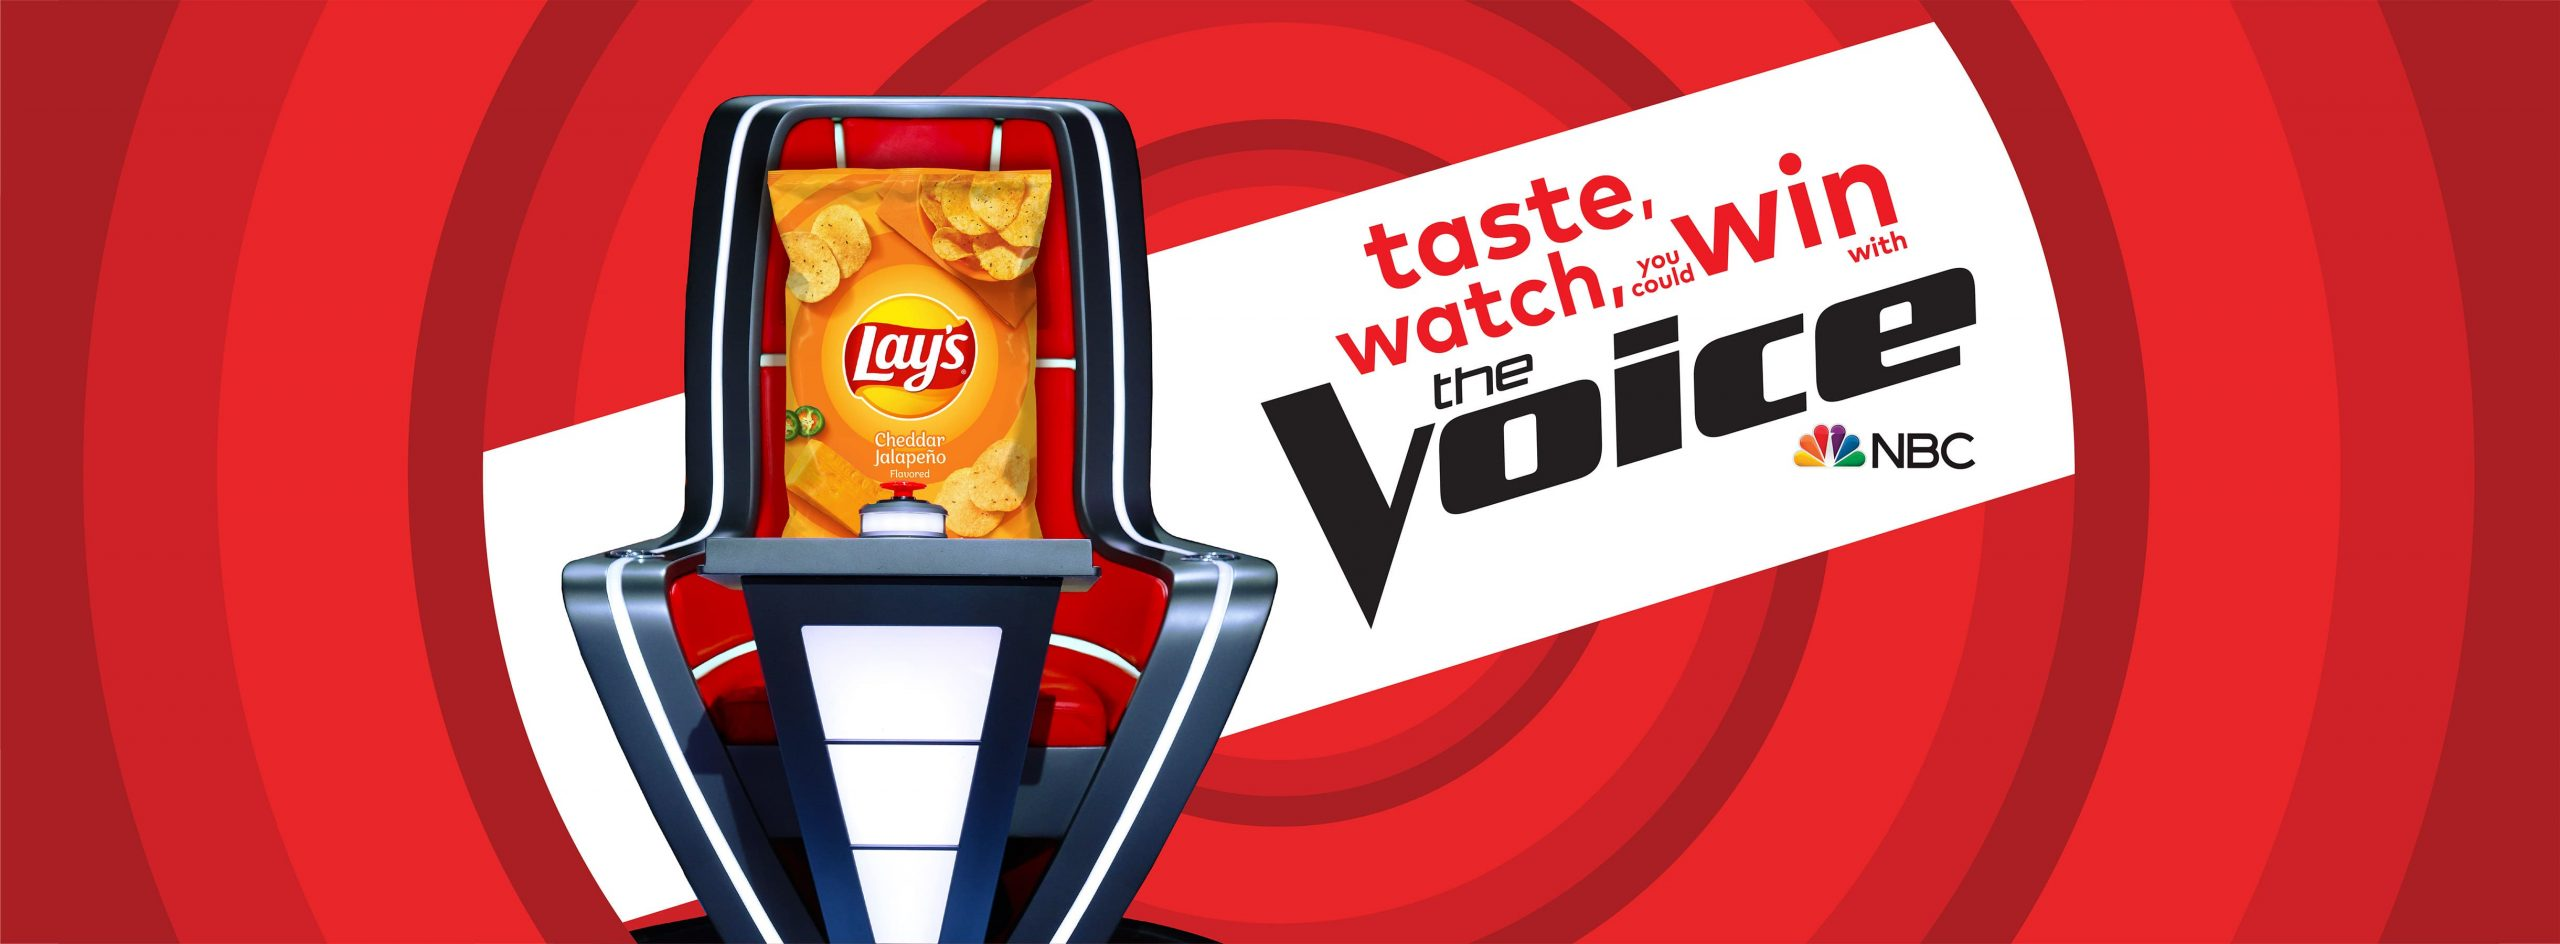 Lay's And The Voice Sweepstakes